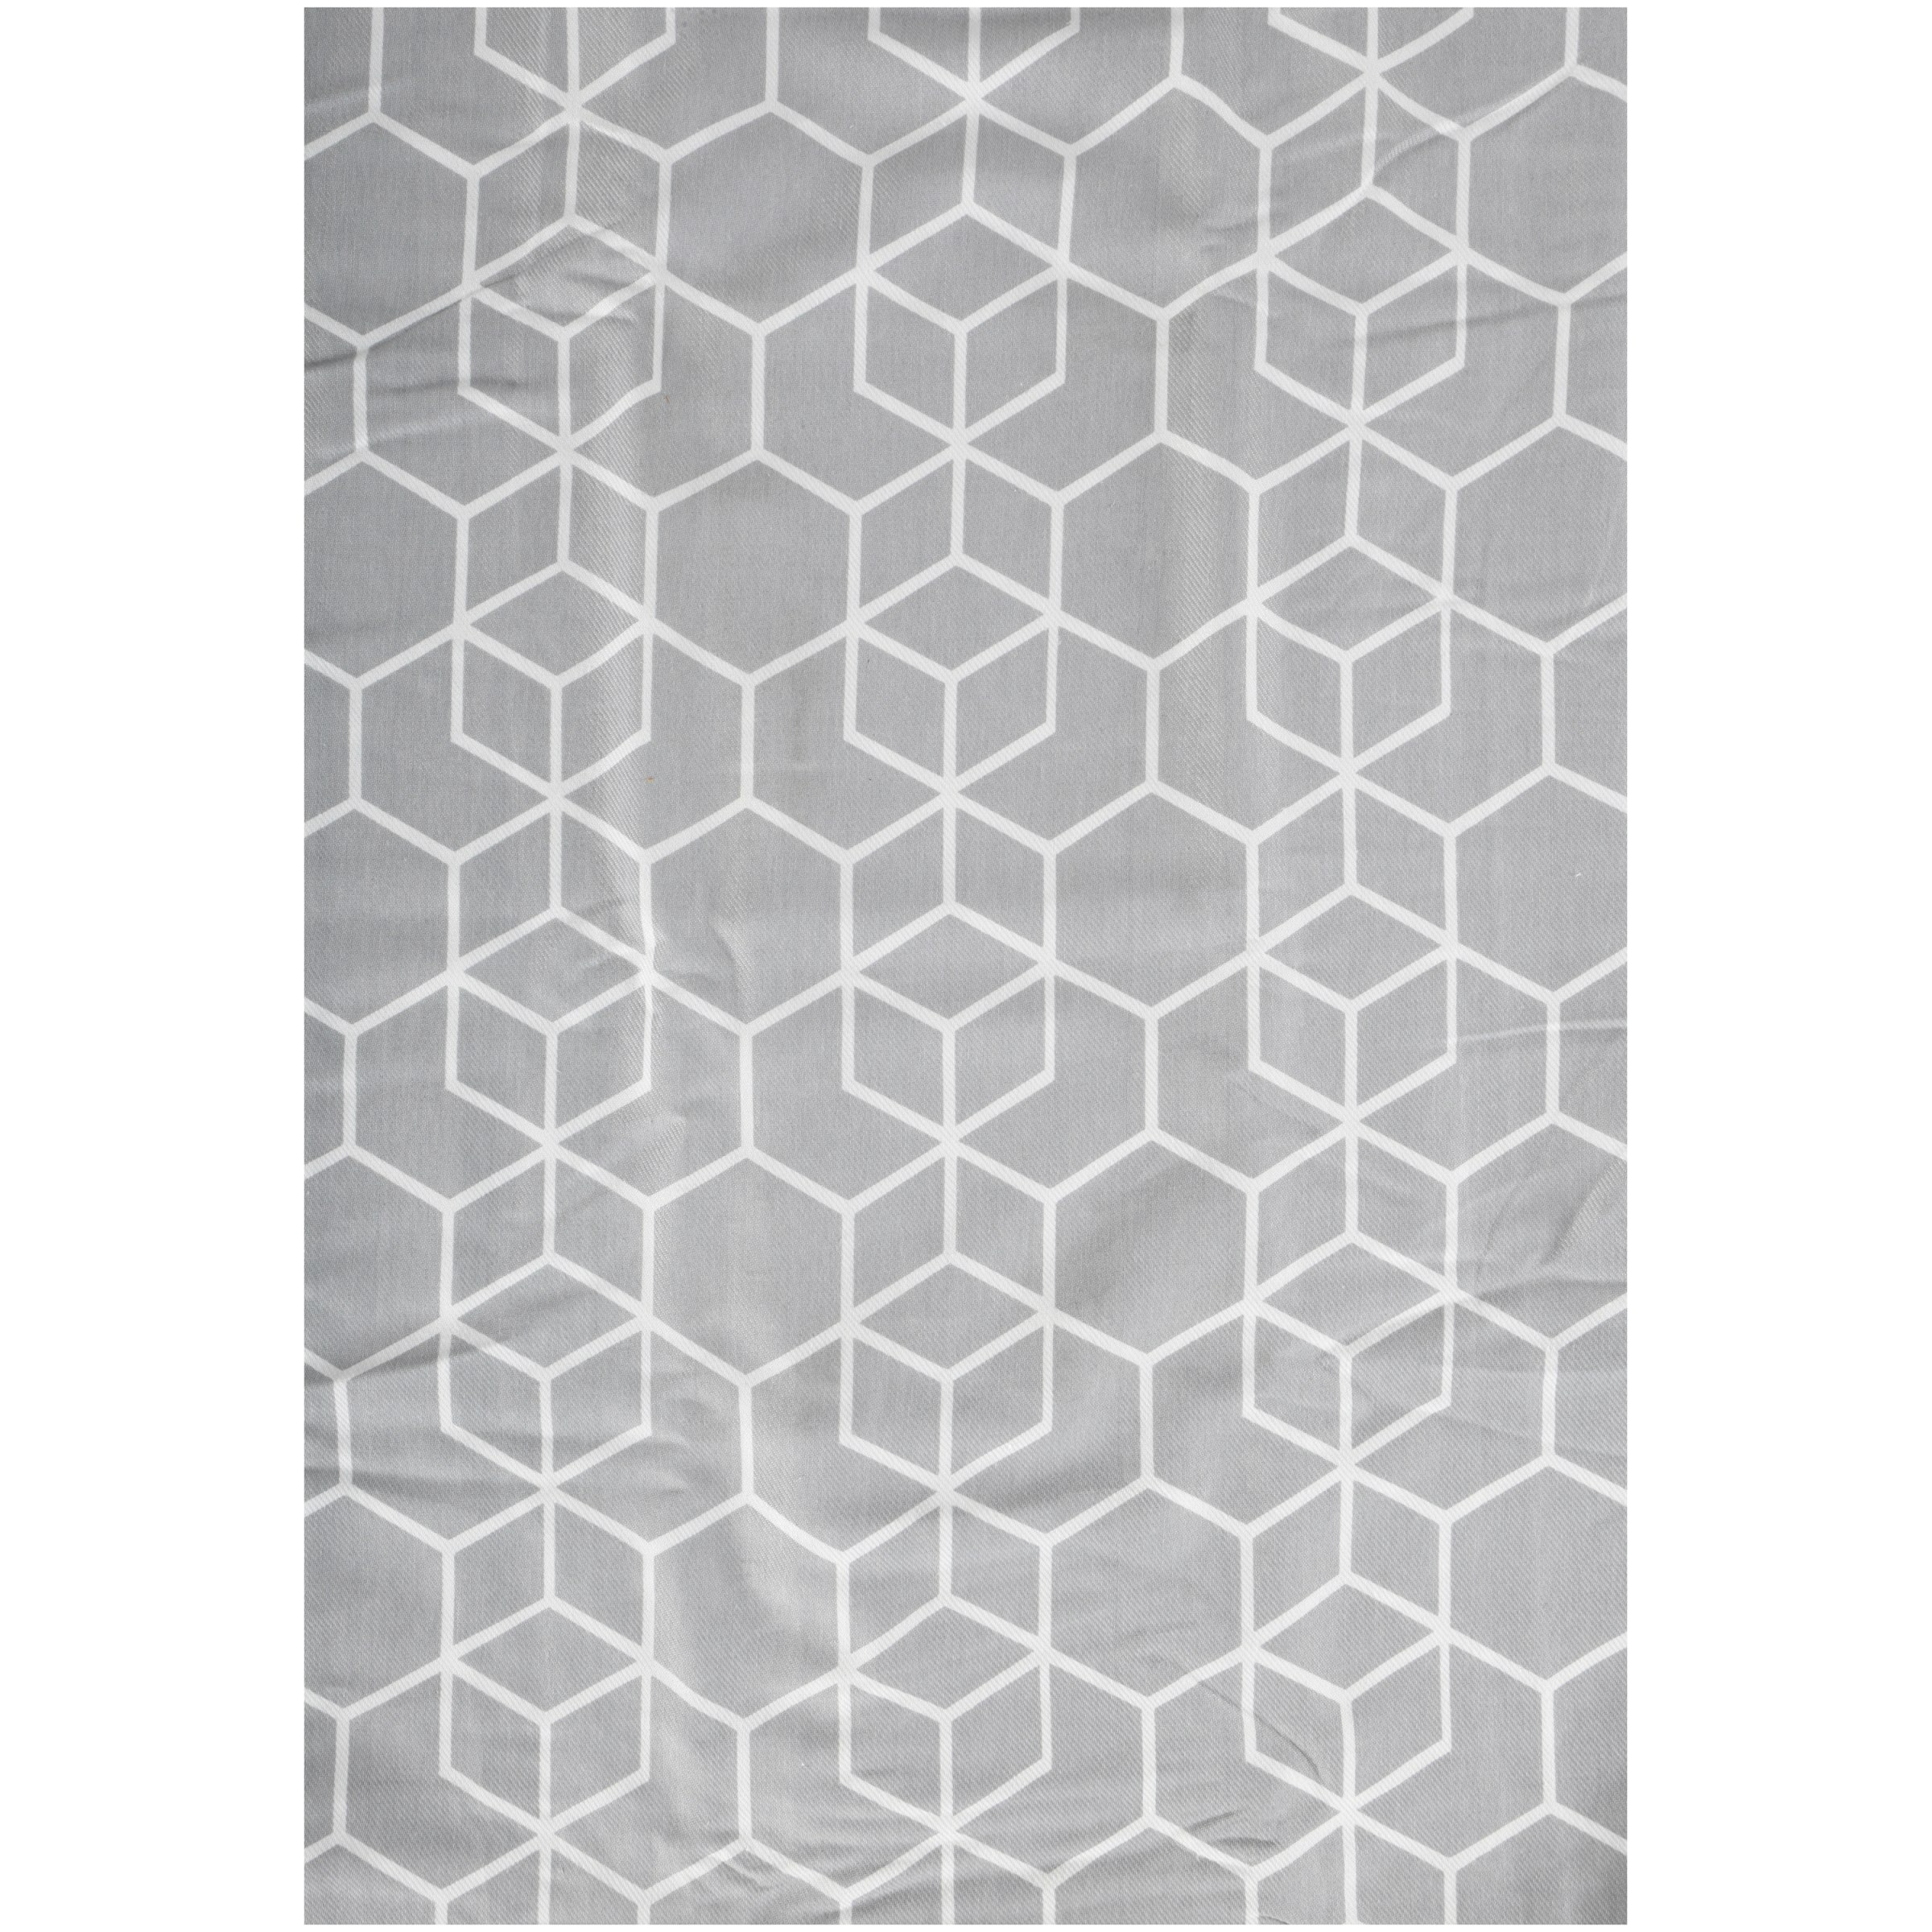 Better Homes and Gardens Hexagon Trellis 13-Piece Bath Set, Shower Curtain and Hooks Included